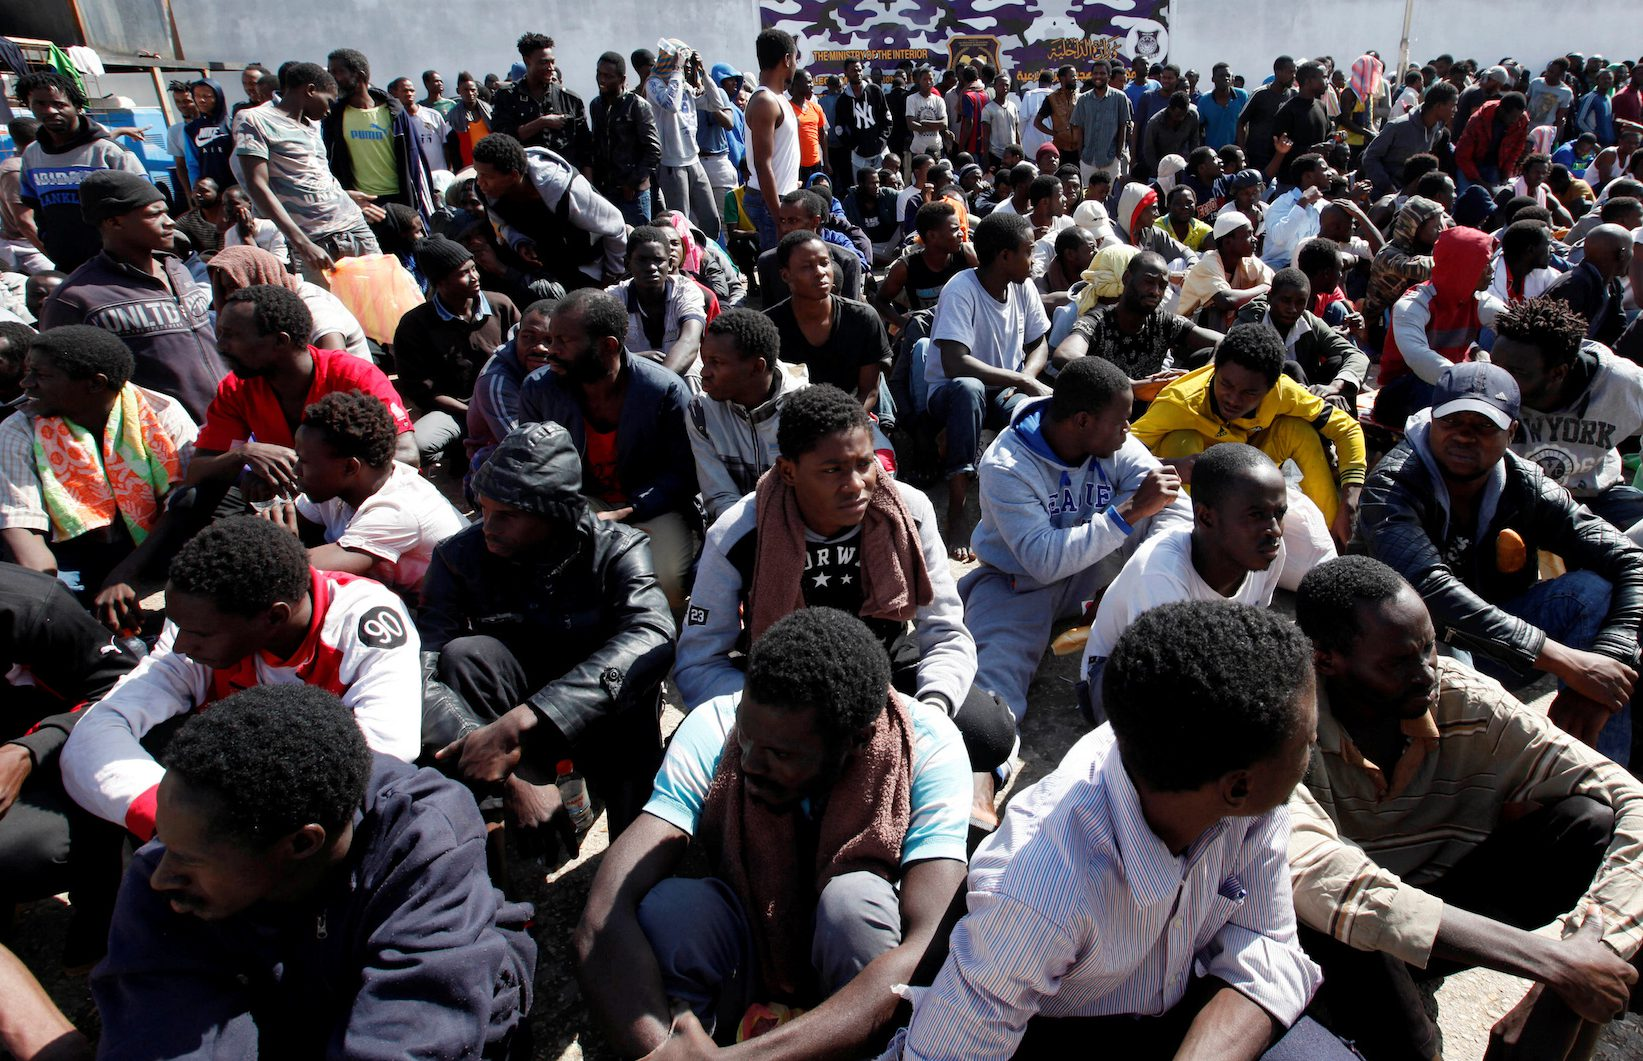 Illegal African migrants sit during a visit by U.N. Special Representative and Head of the United Nations Support Mission in Libya Martin Kobler and International Organization for Migration Director General William Lacy Swing at a detention camp in Tripoli, Libya, March 22, 2017.